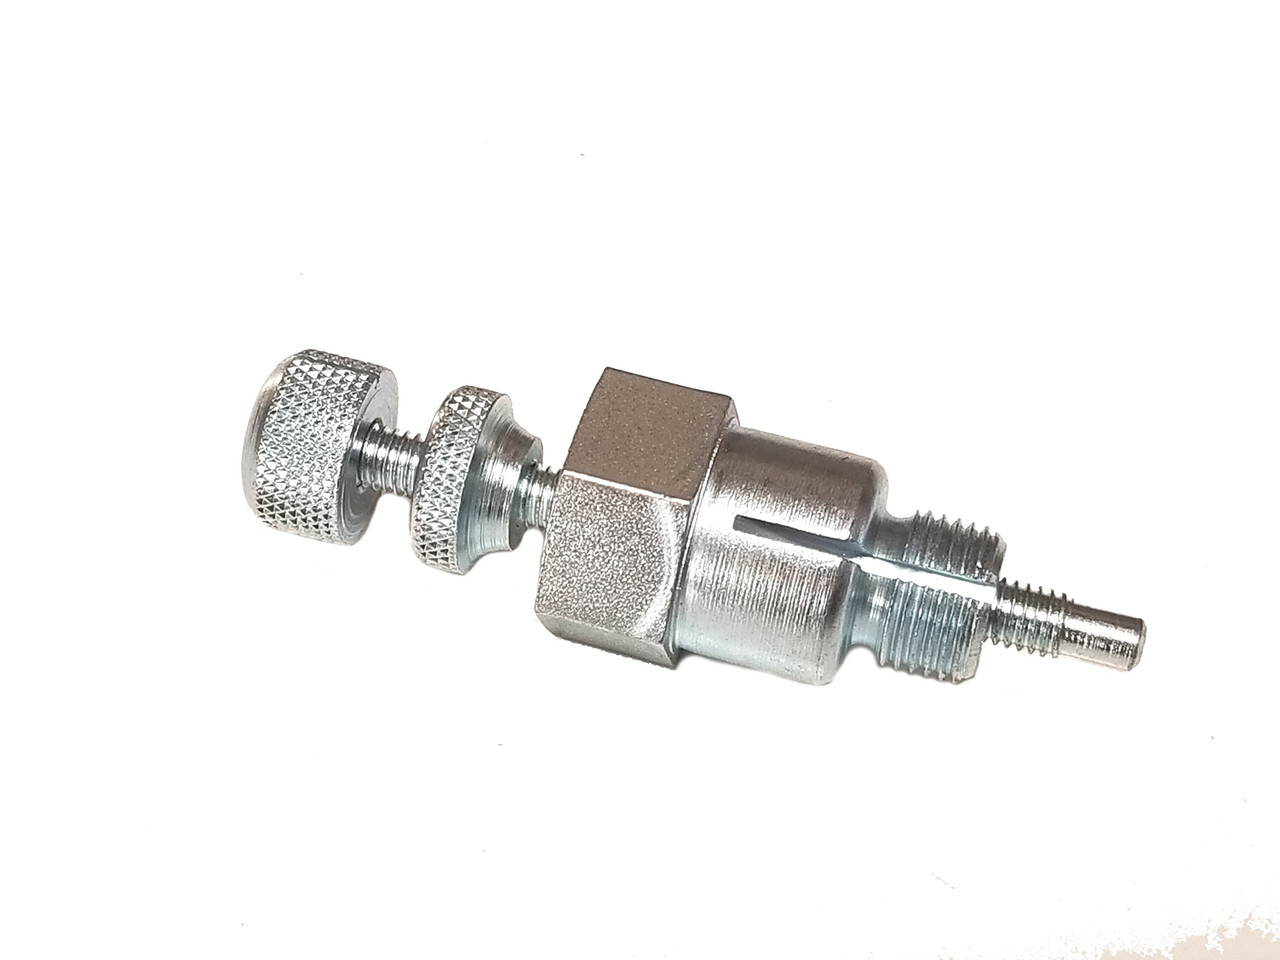 Moped Ignition Timing Micrometer Tool - 14mm Threading